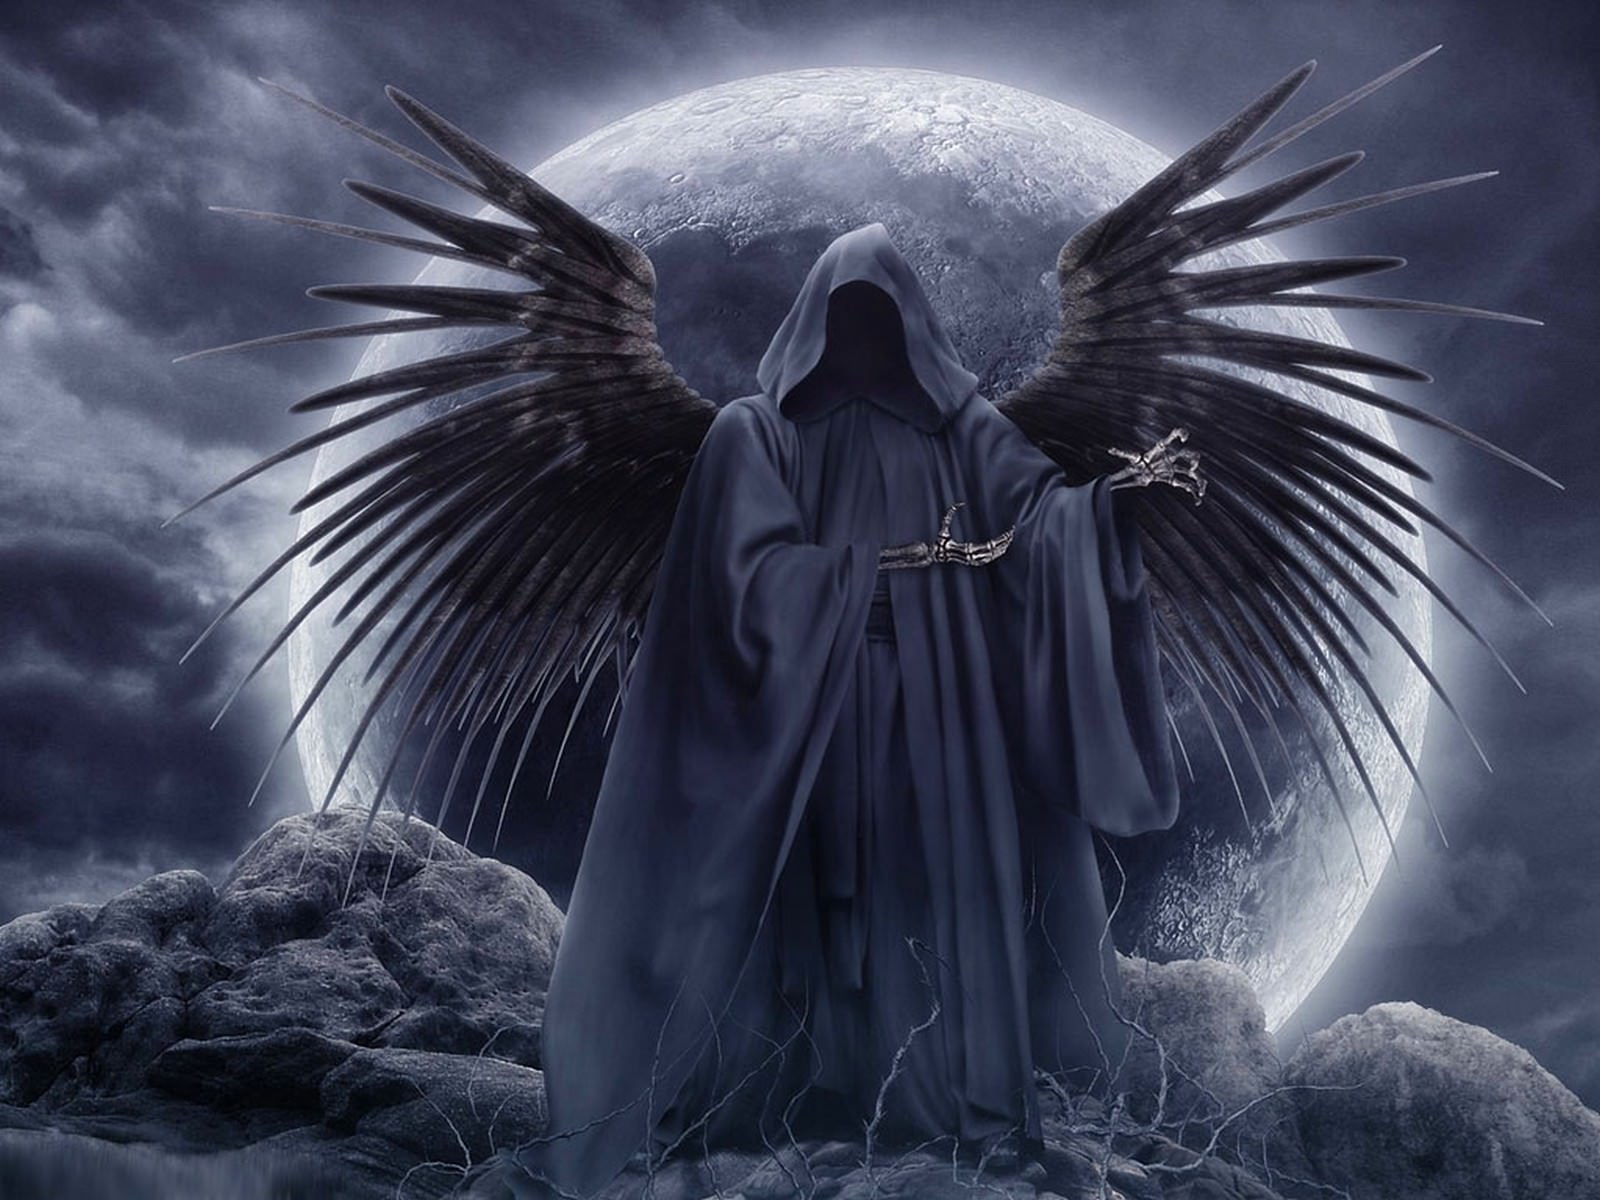 1600x1200 Death Angel wallpaper from Angels wallpapers